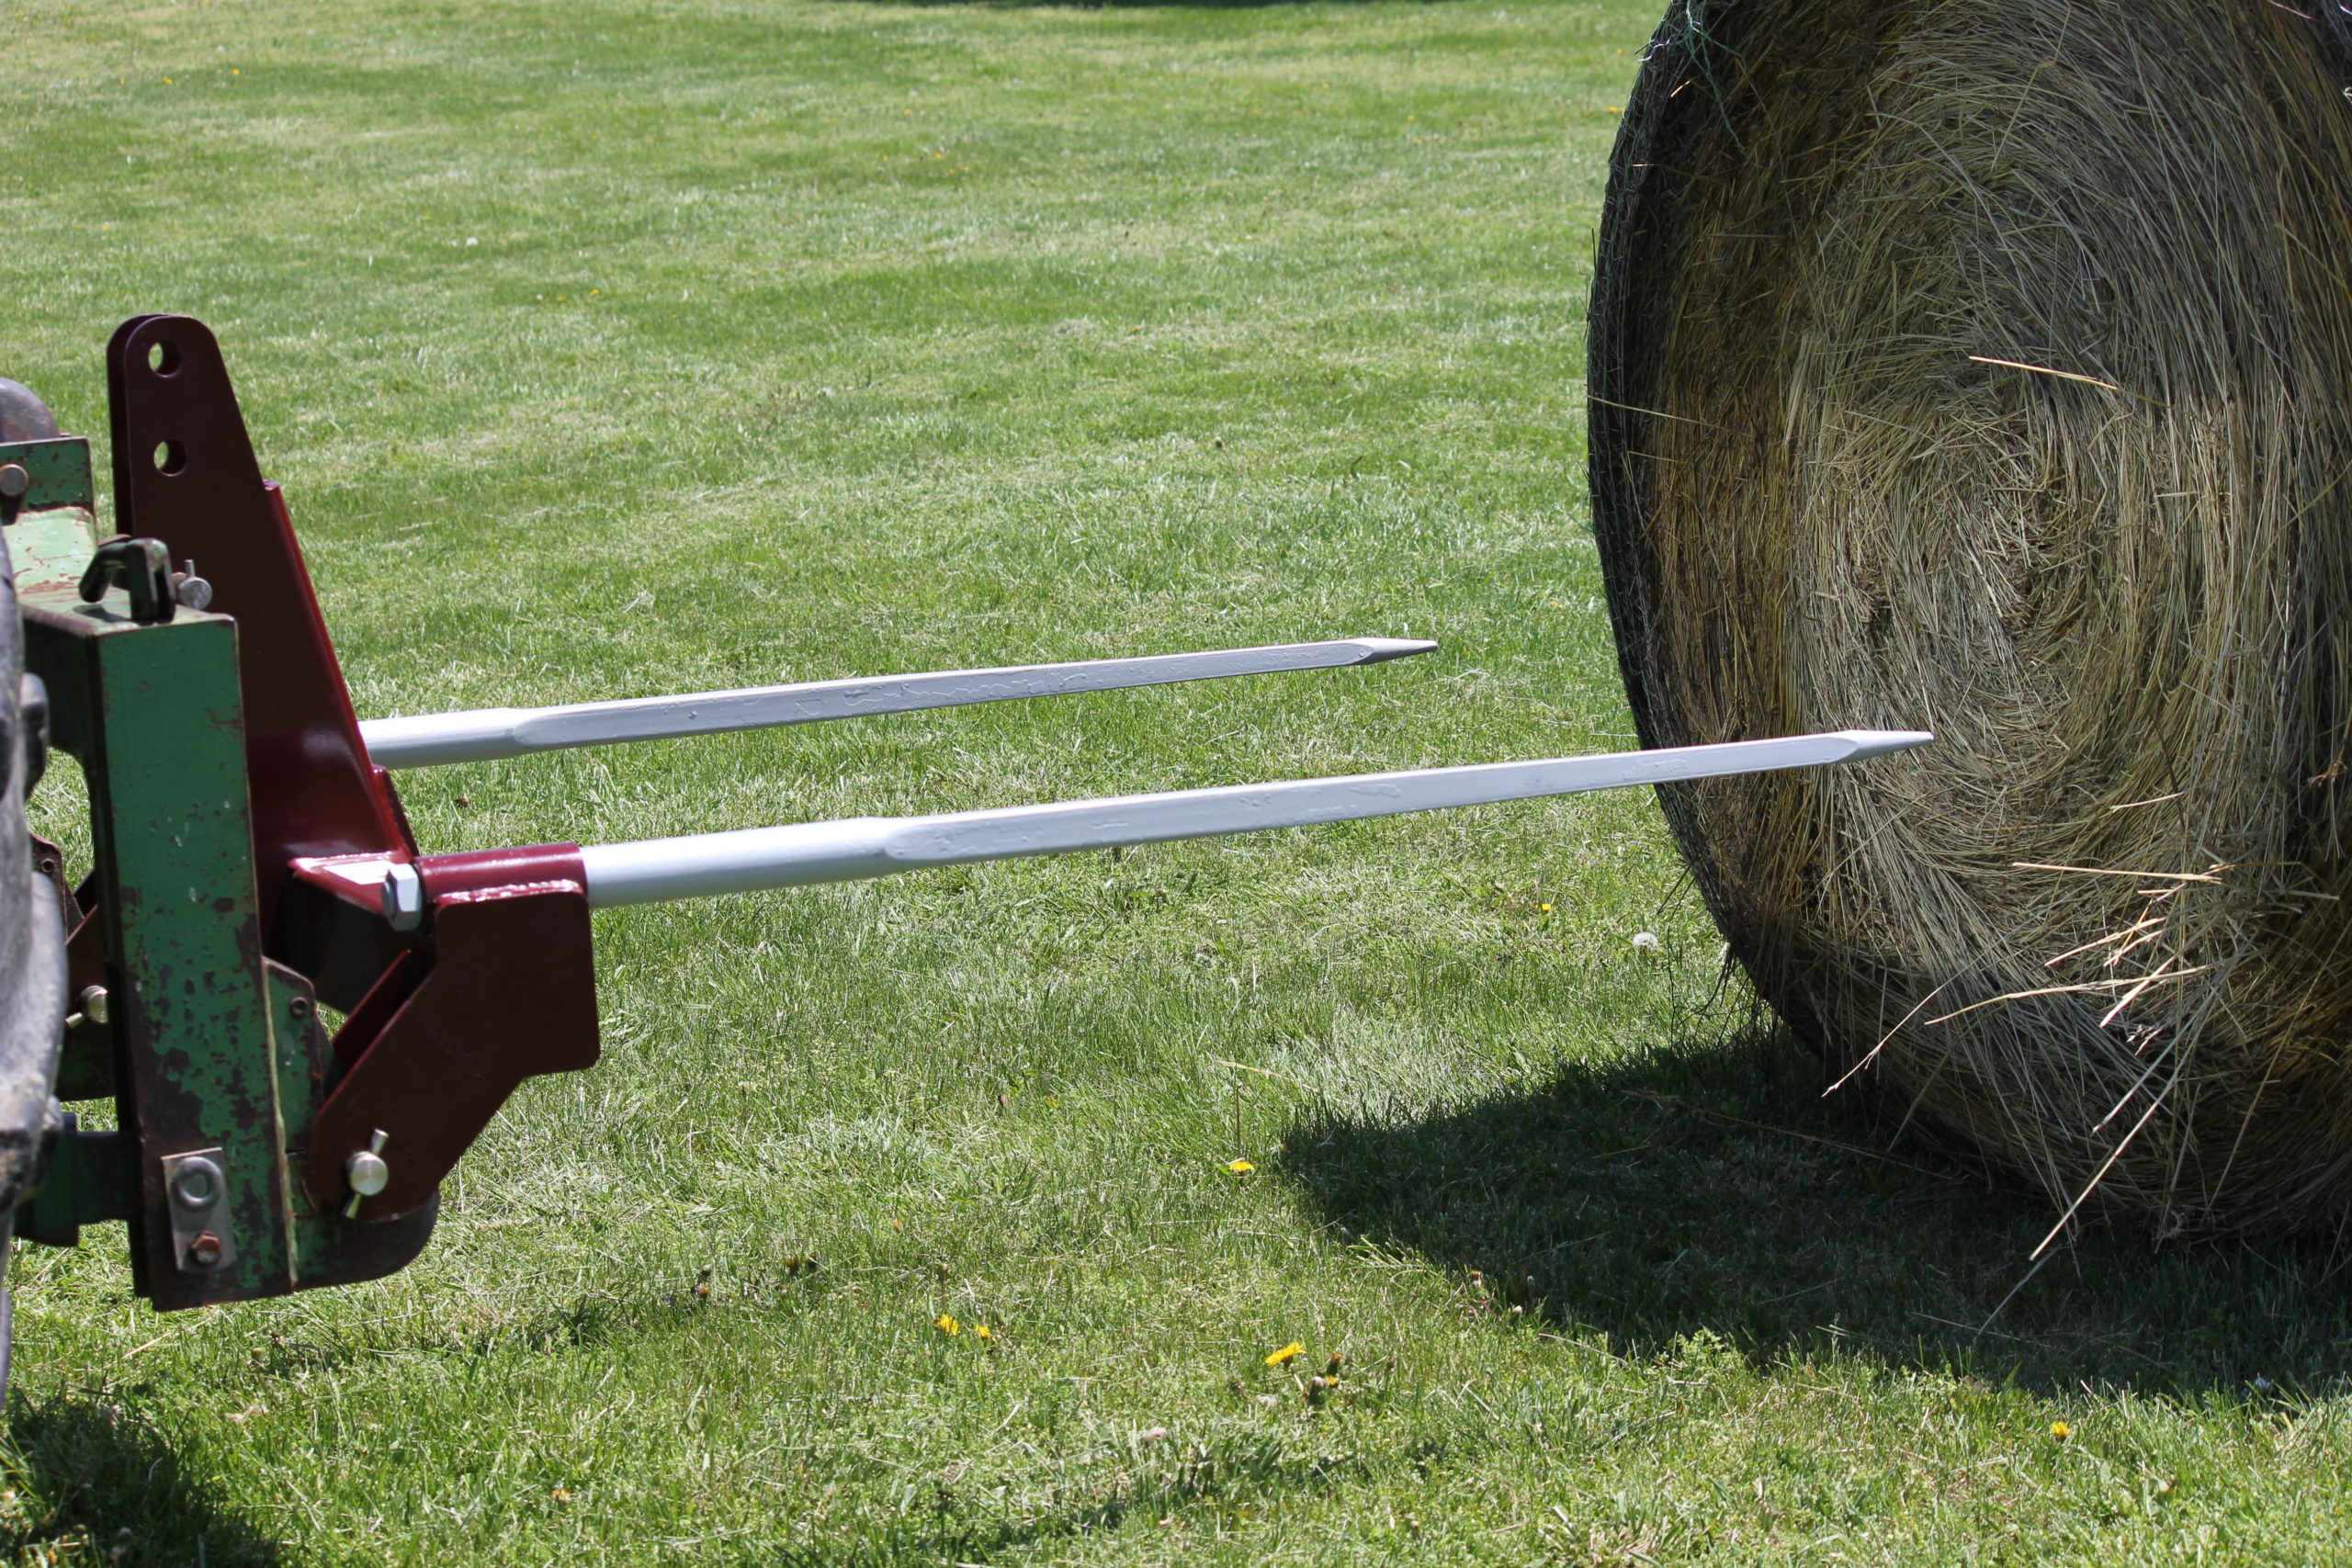 3-Point Double Quick-Hitch hay bale spear beginning to pierce a big bale